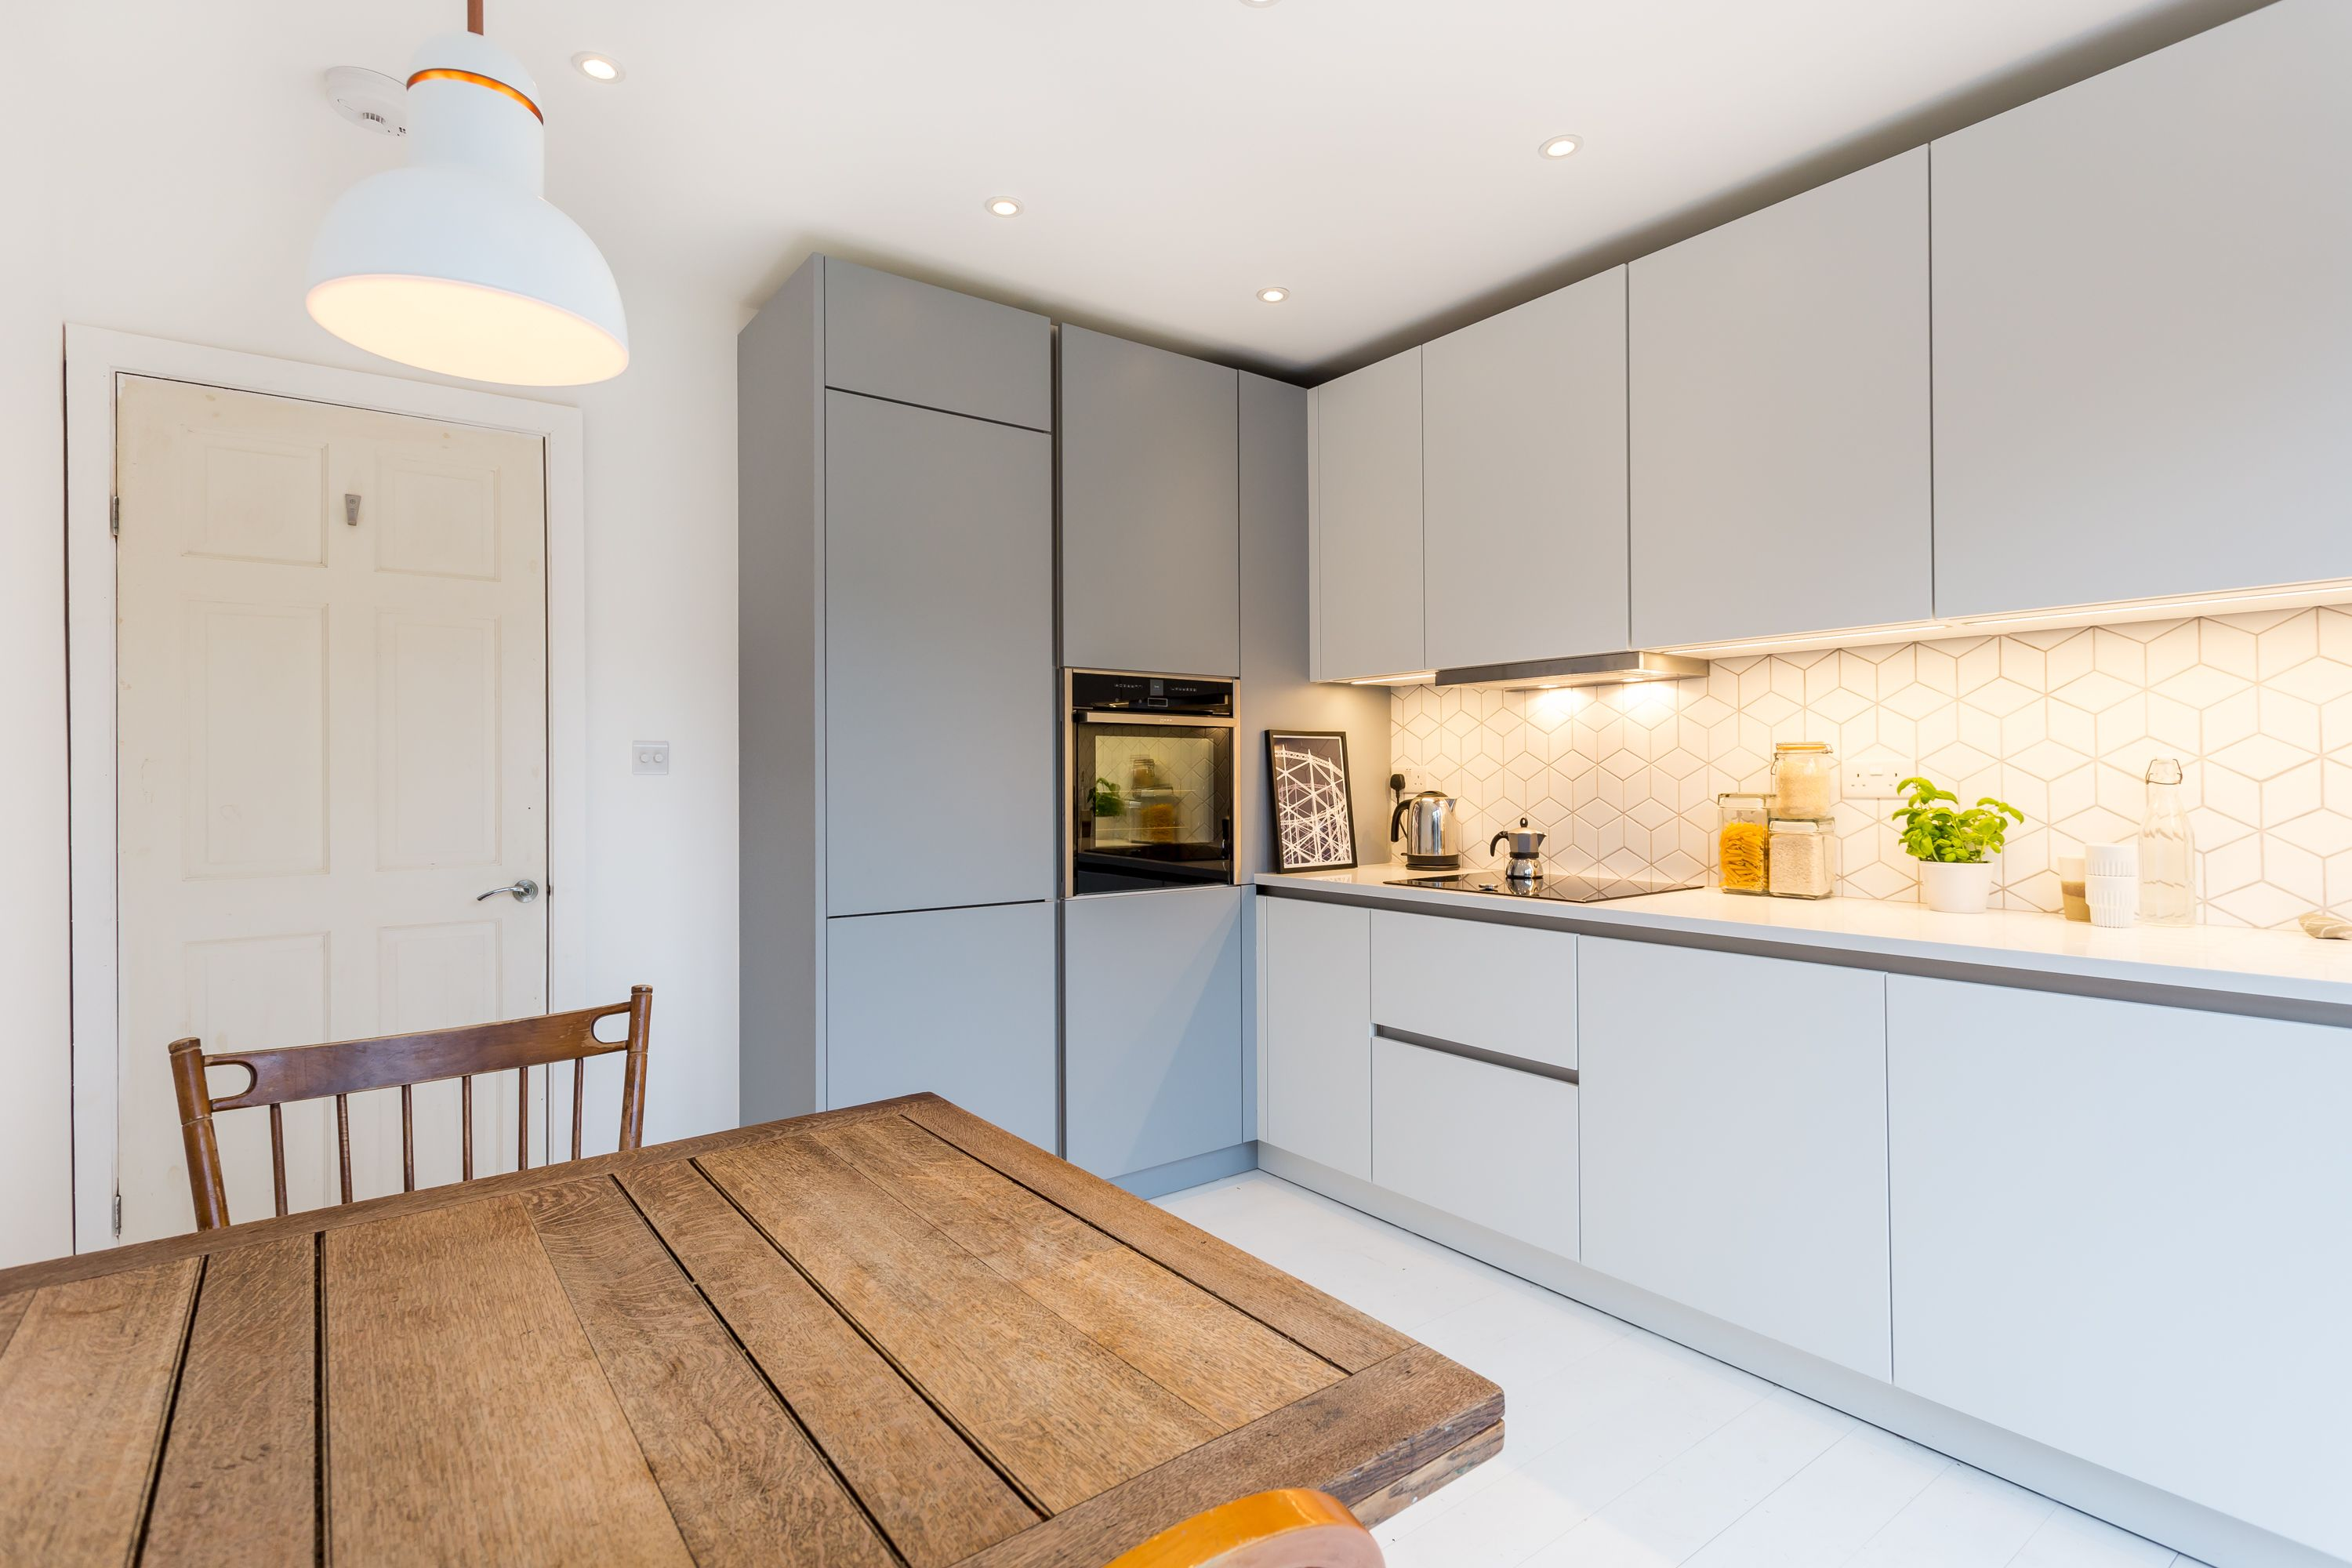 A Beautiful Nolte Soft Lac Handleless Kitchen In Papyrus Grey And White.  With Bi